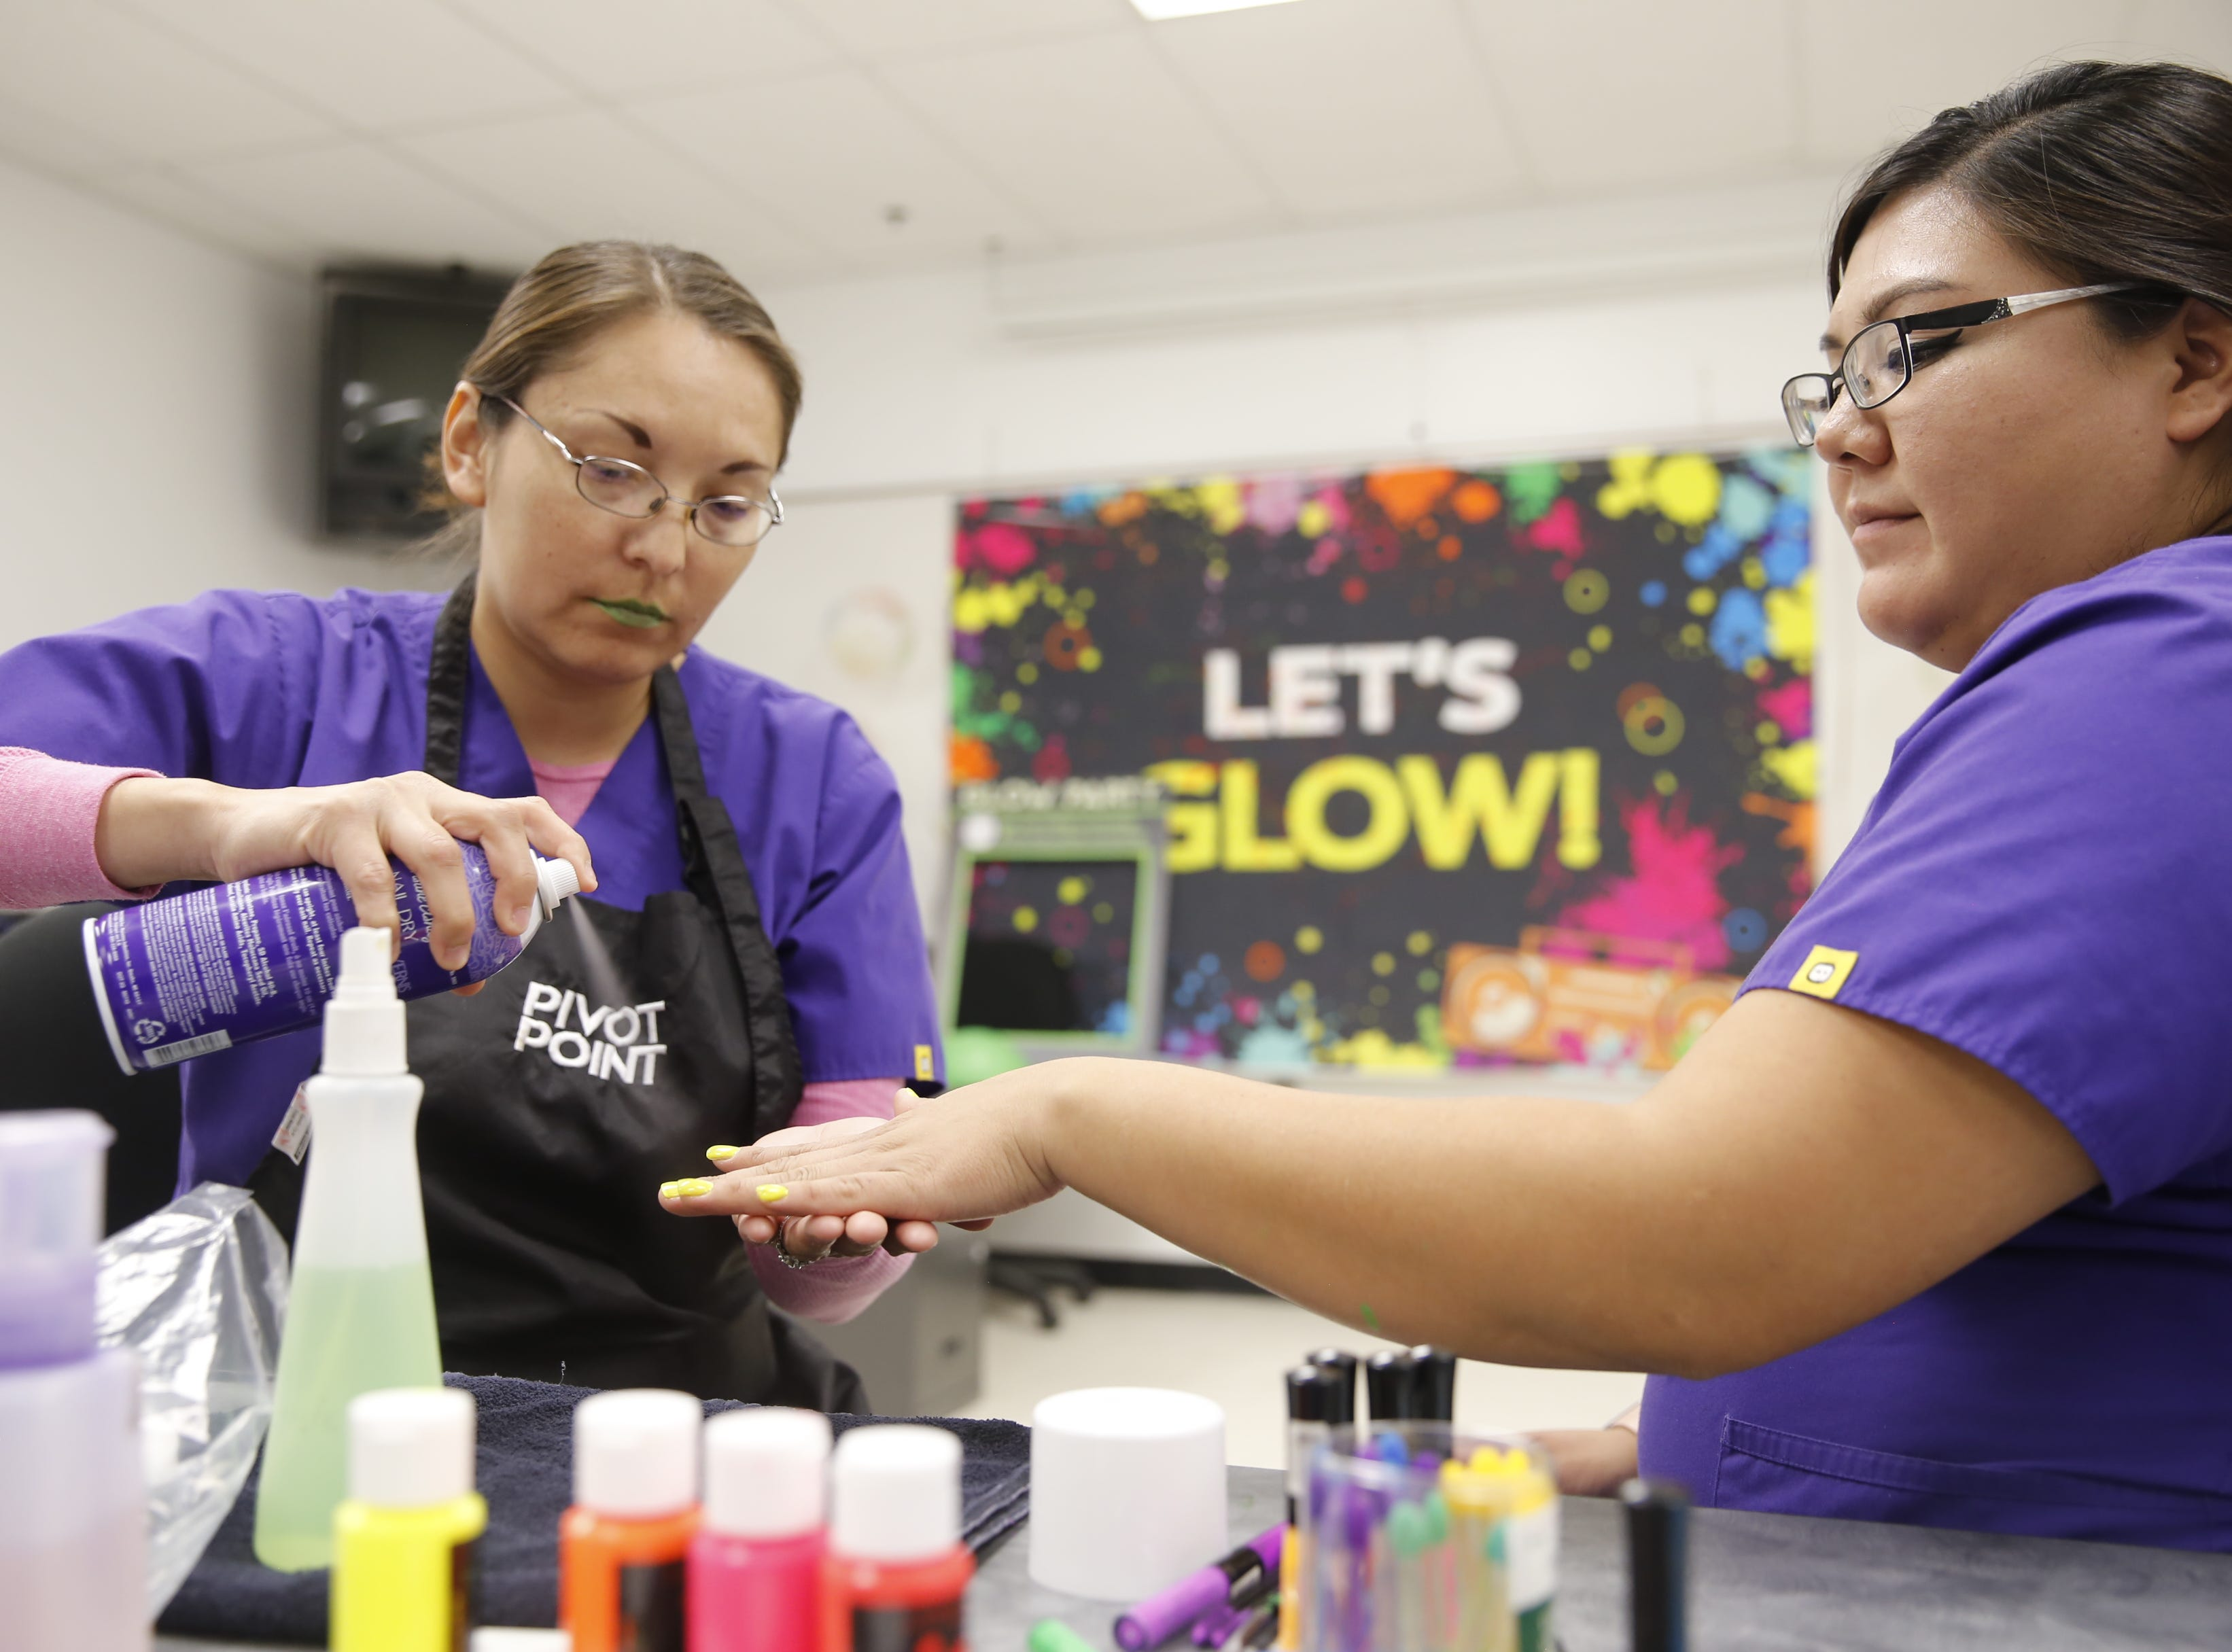 San Juan College cosmetology students Elaine Nelson and Tasheena Halwood, from left, practice their cosmetic skills on Thursday in preparation for the program's Glow Dance Party.